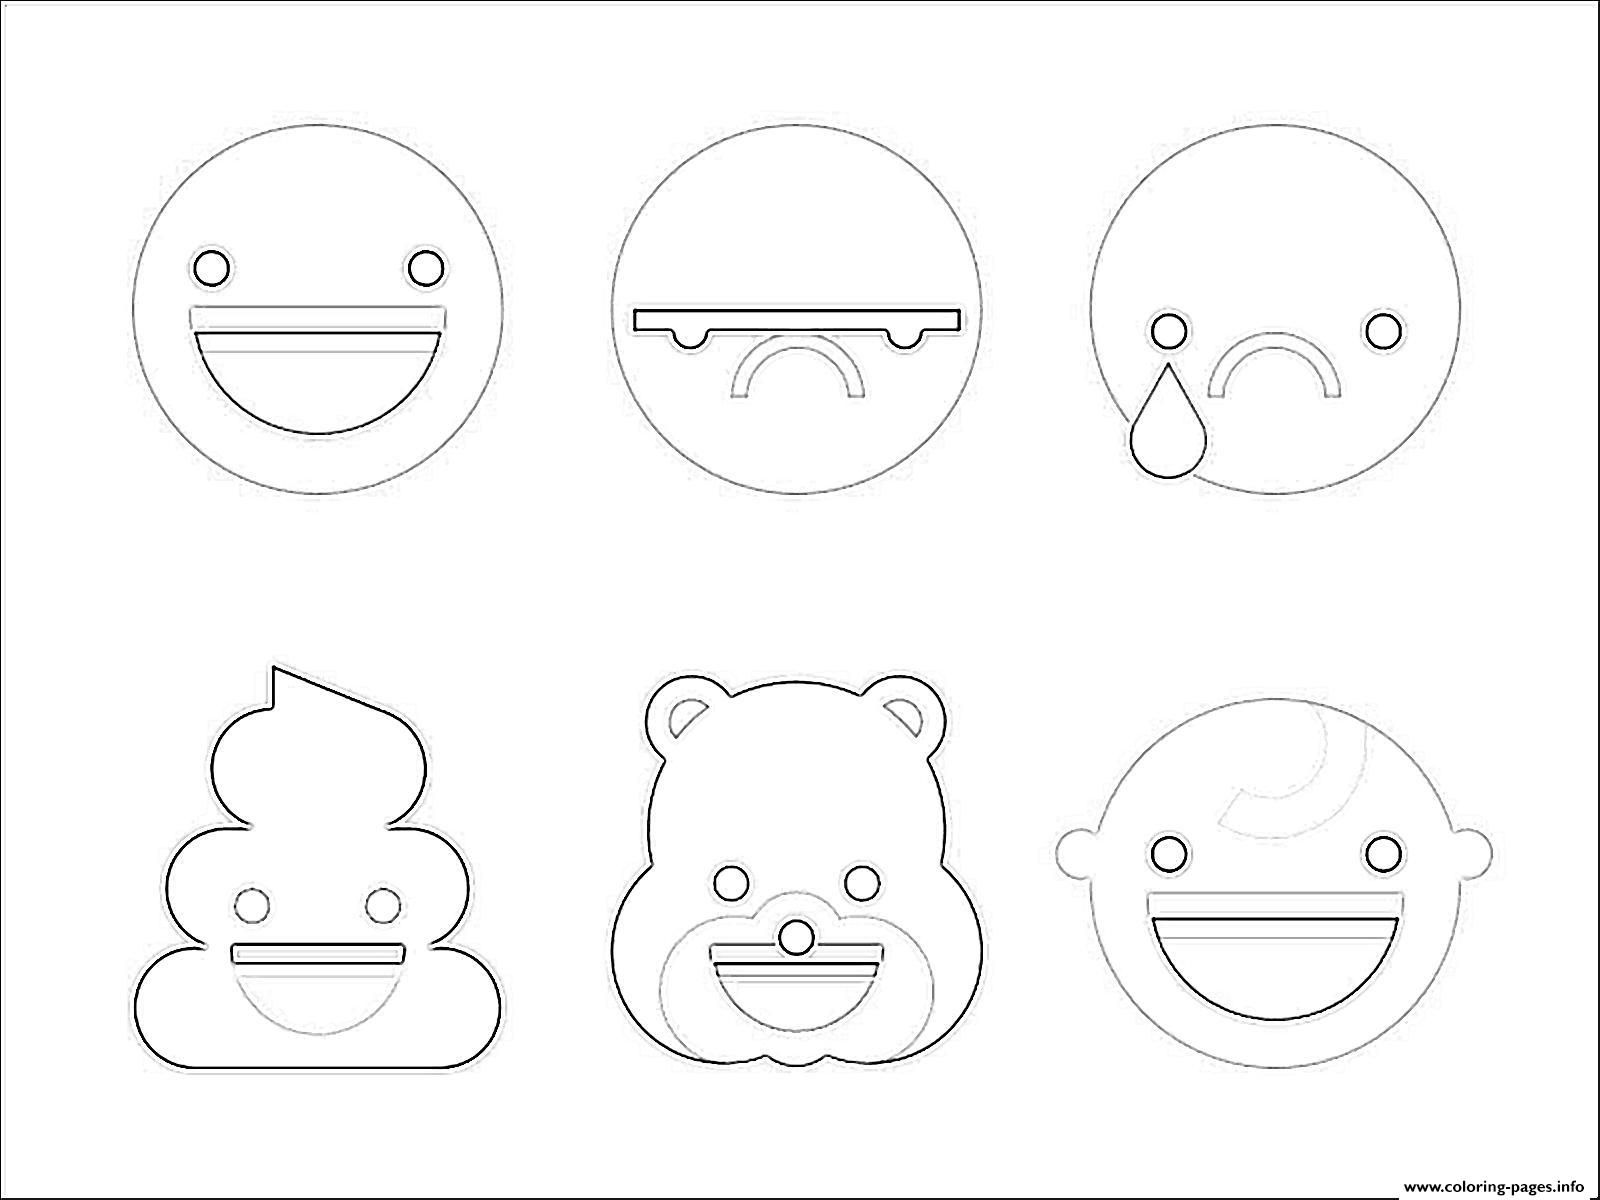 Emoji Coloring Pages - Coloring Home